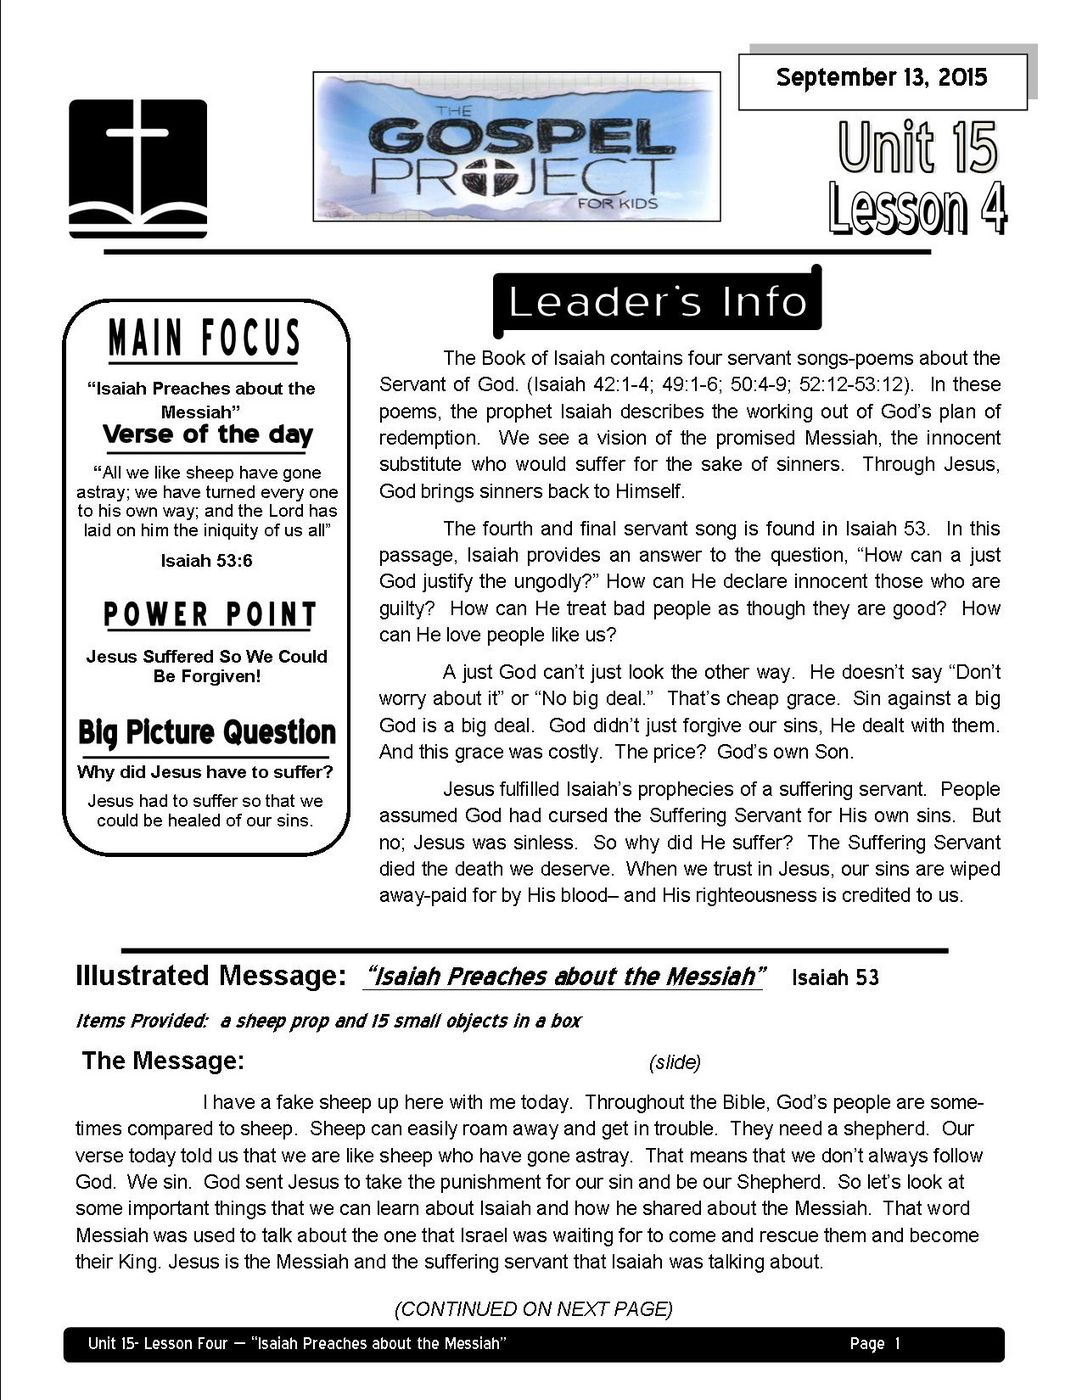 Lead U15- L4-page 1-Isaiah and the Messiah